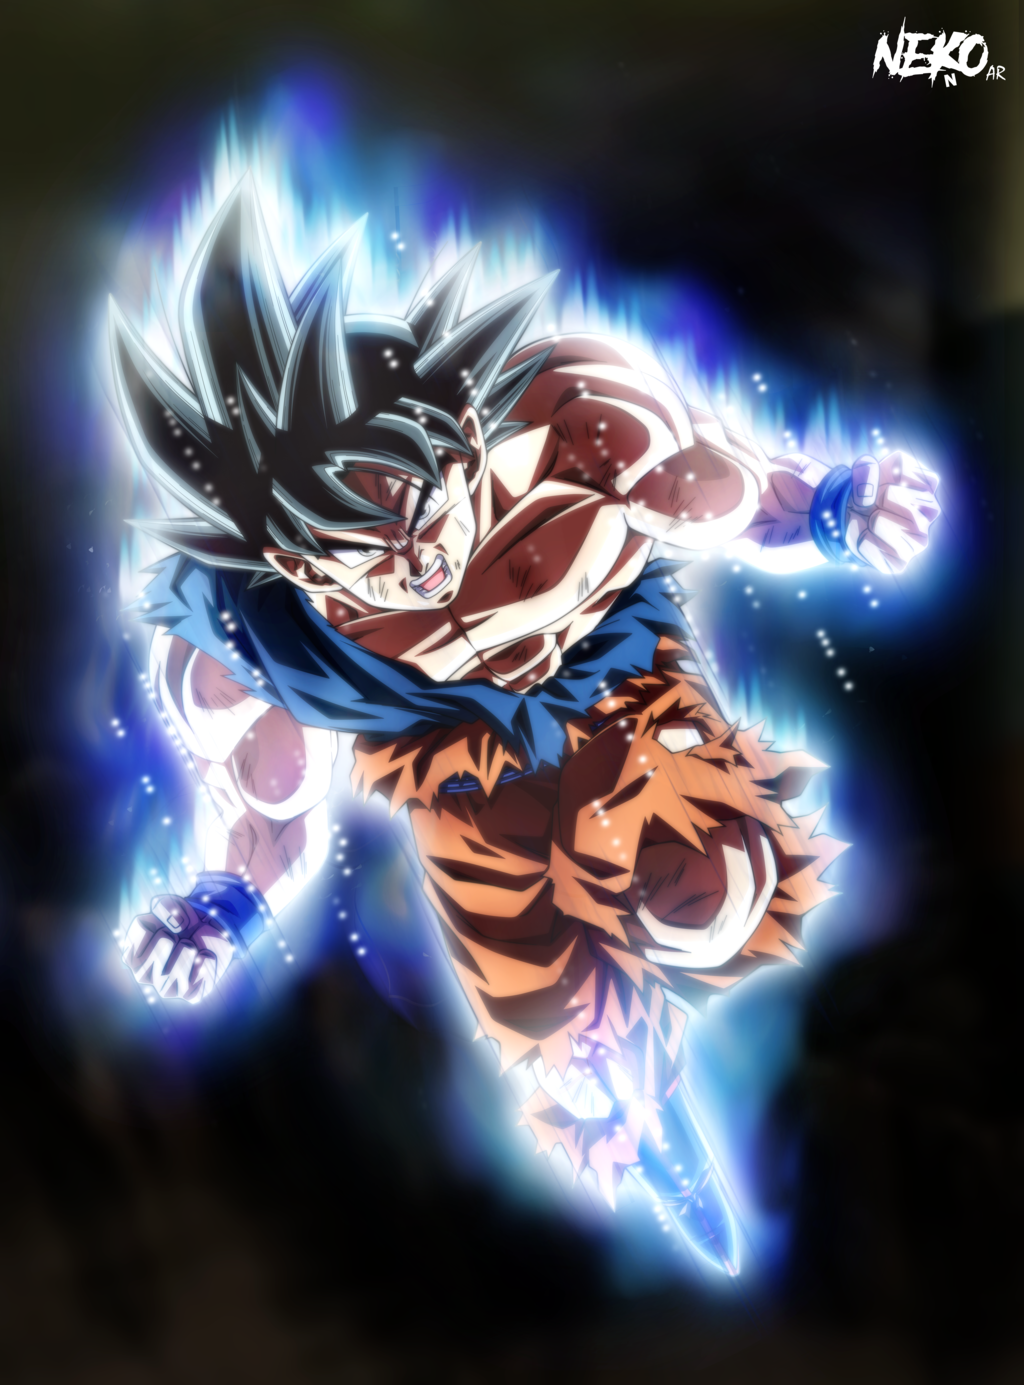 11 Ultra Instinct Goku Wallpaper 4k Download Page 3 Of 3 The